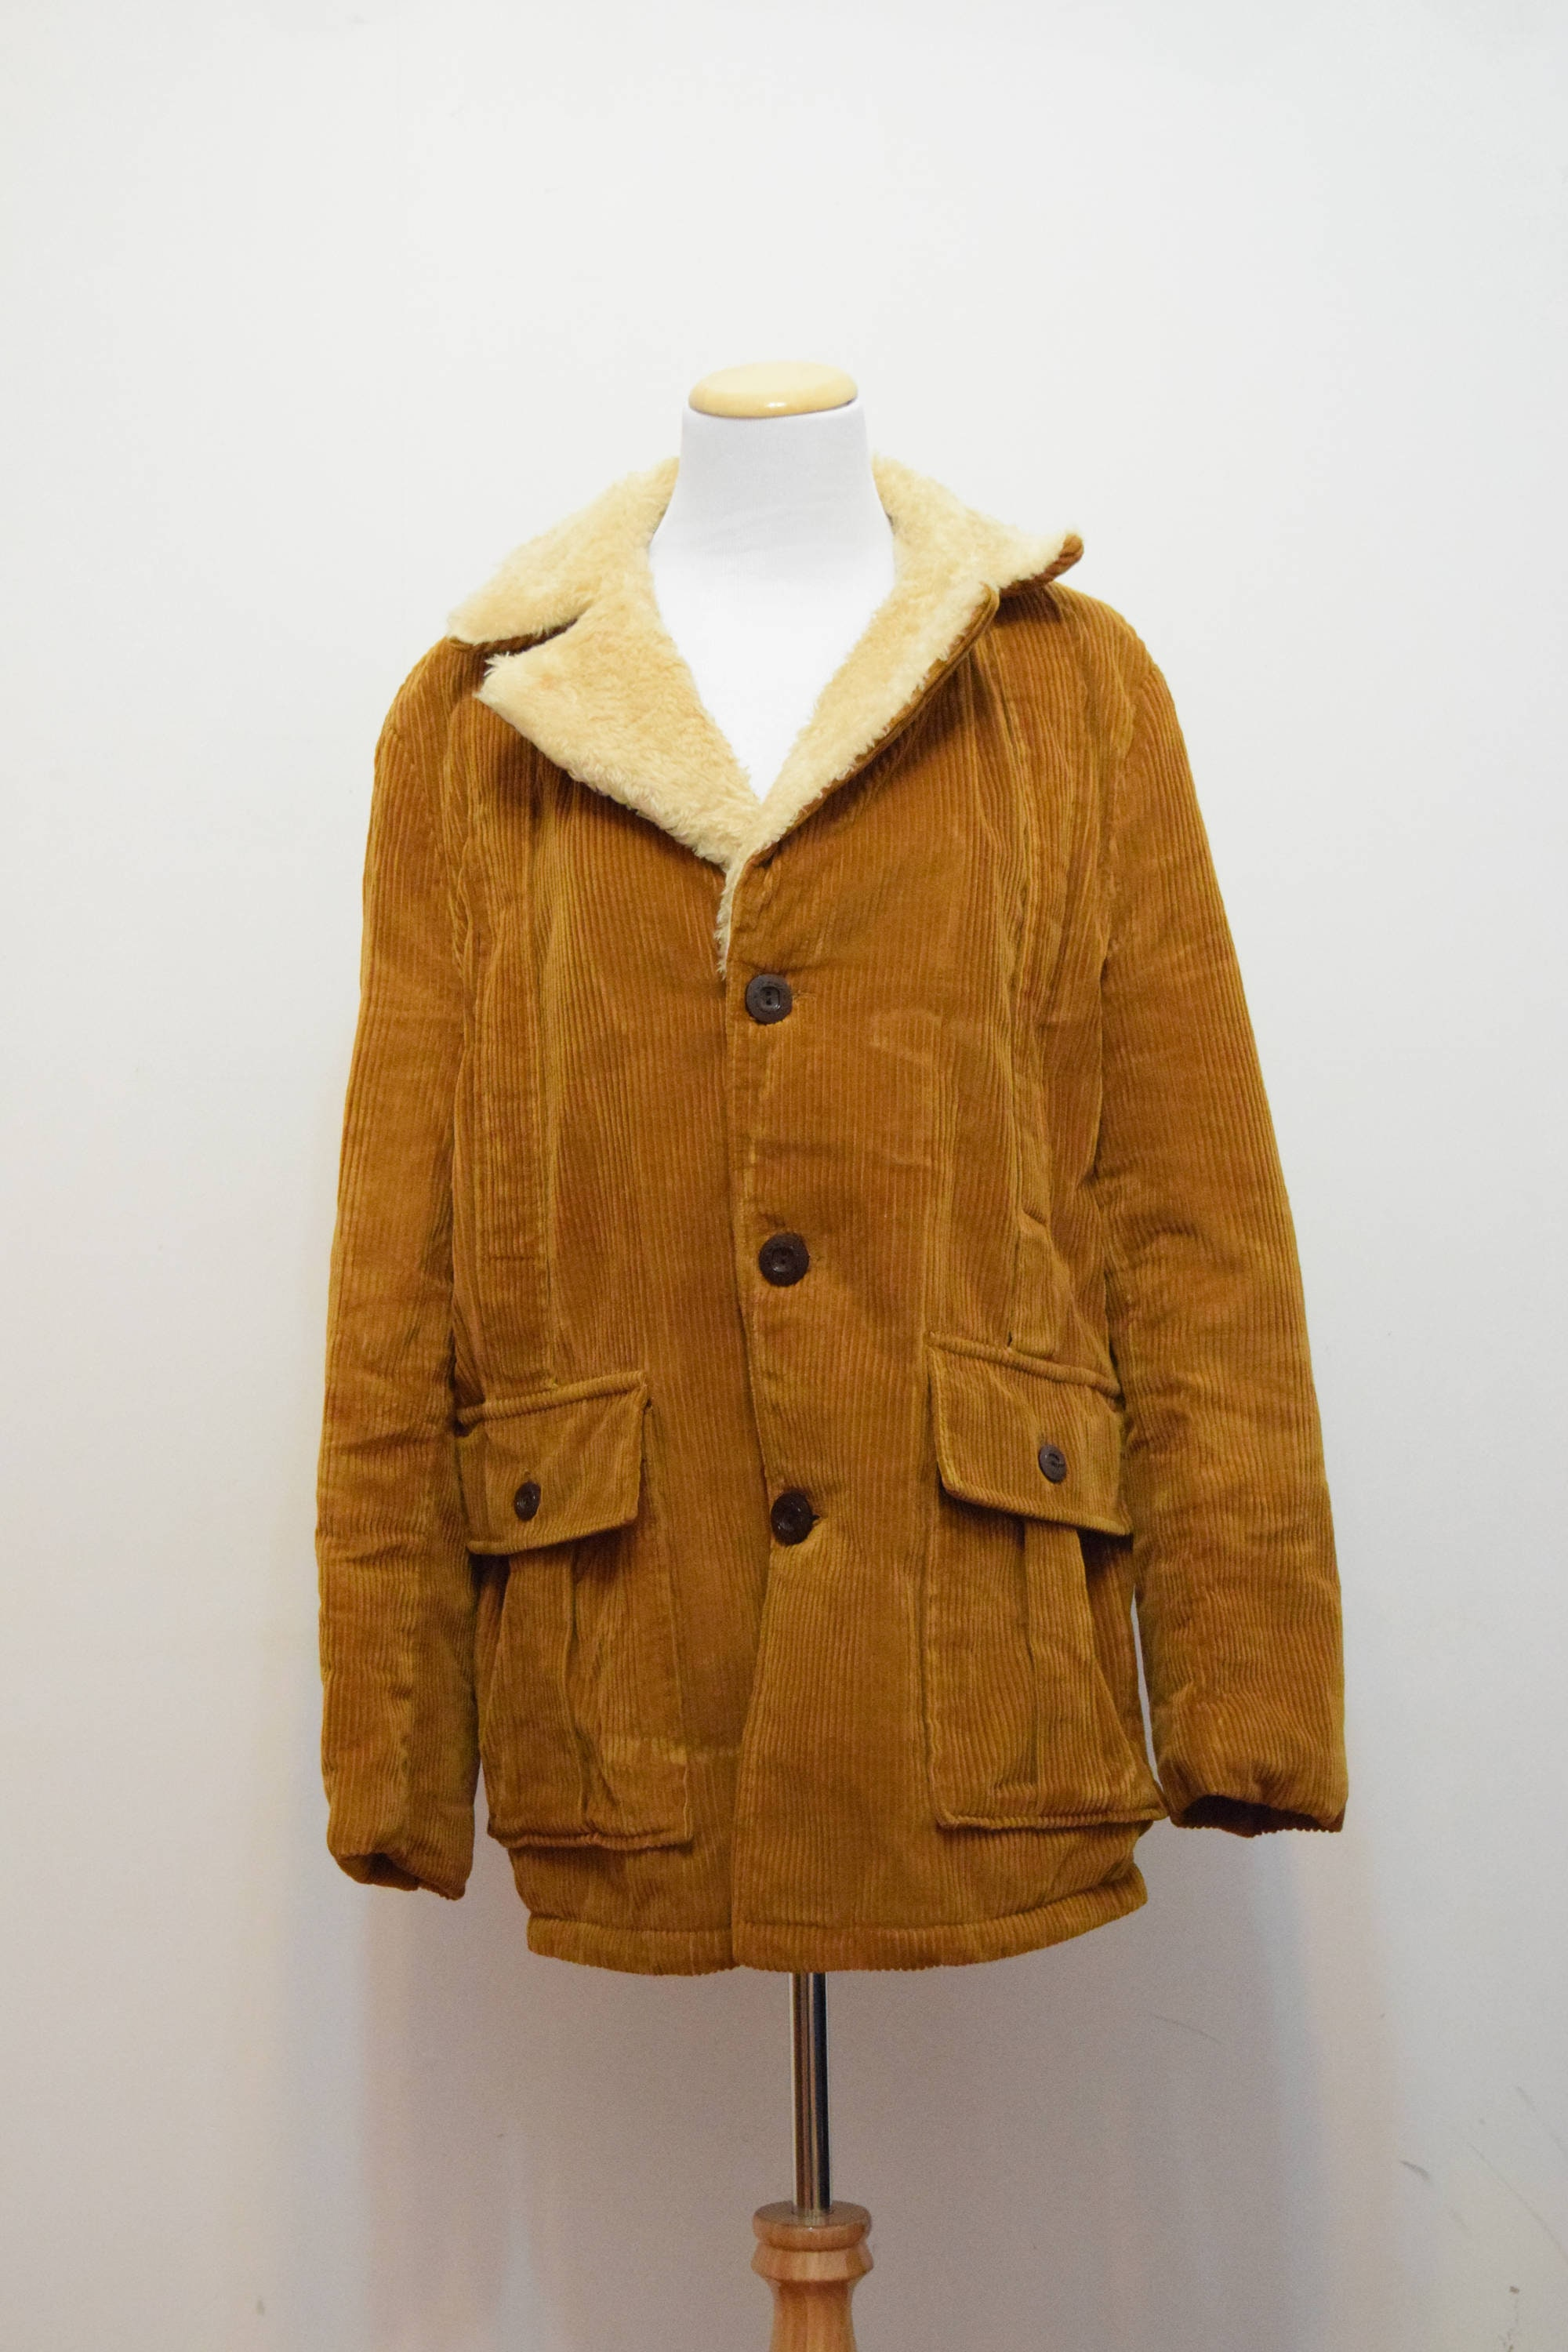 Tan Corduroy Jacket Northland Men S Coat Country Rustic L Xl